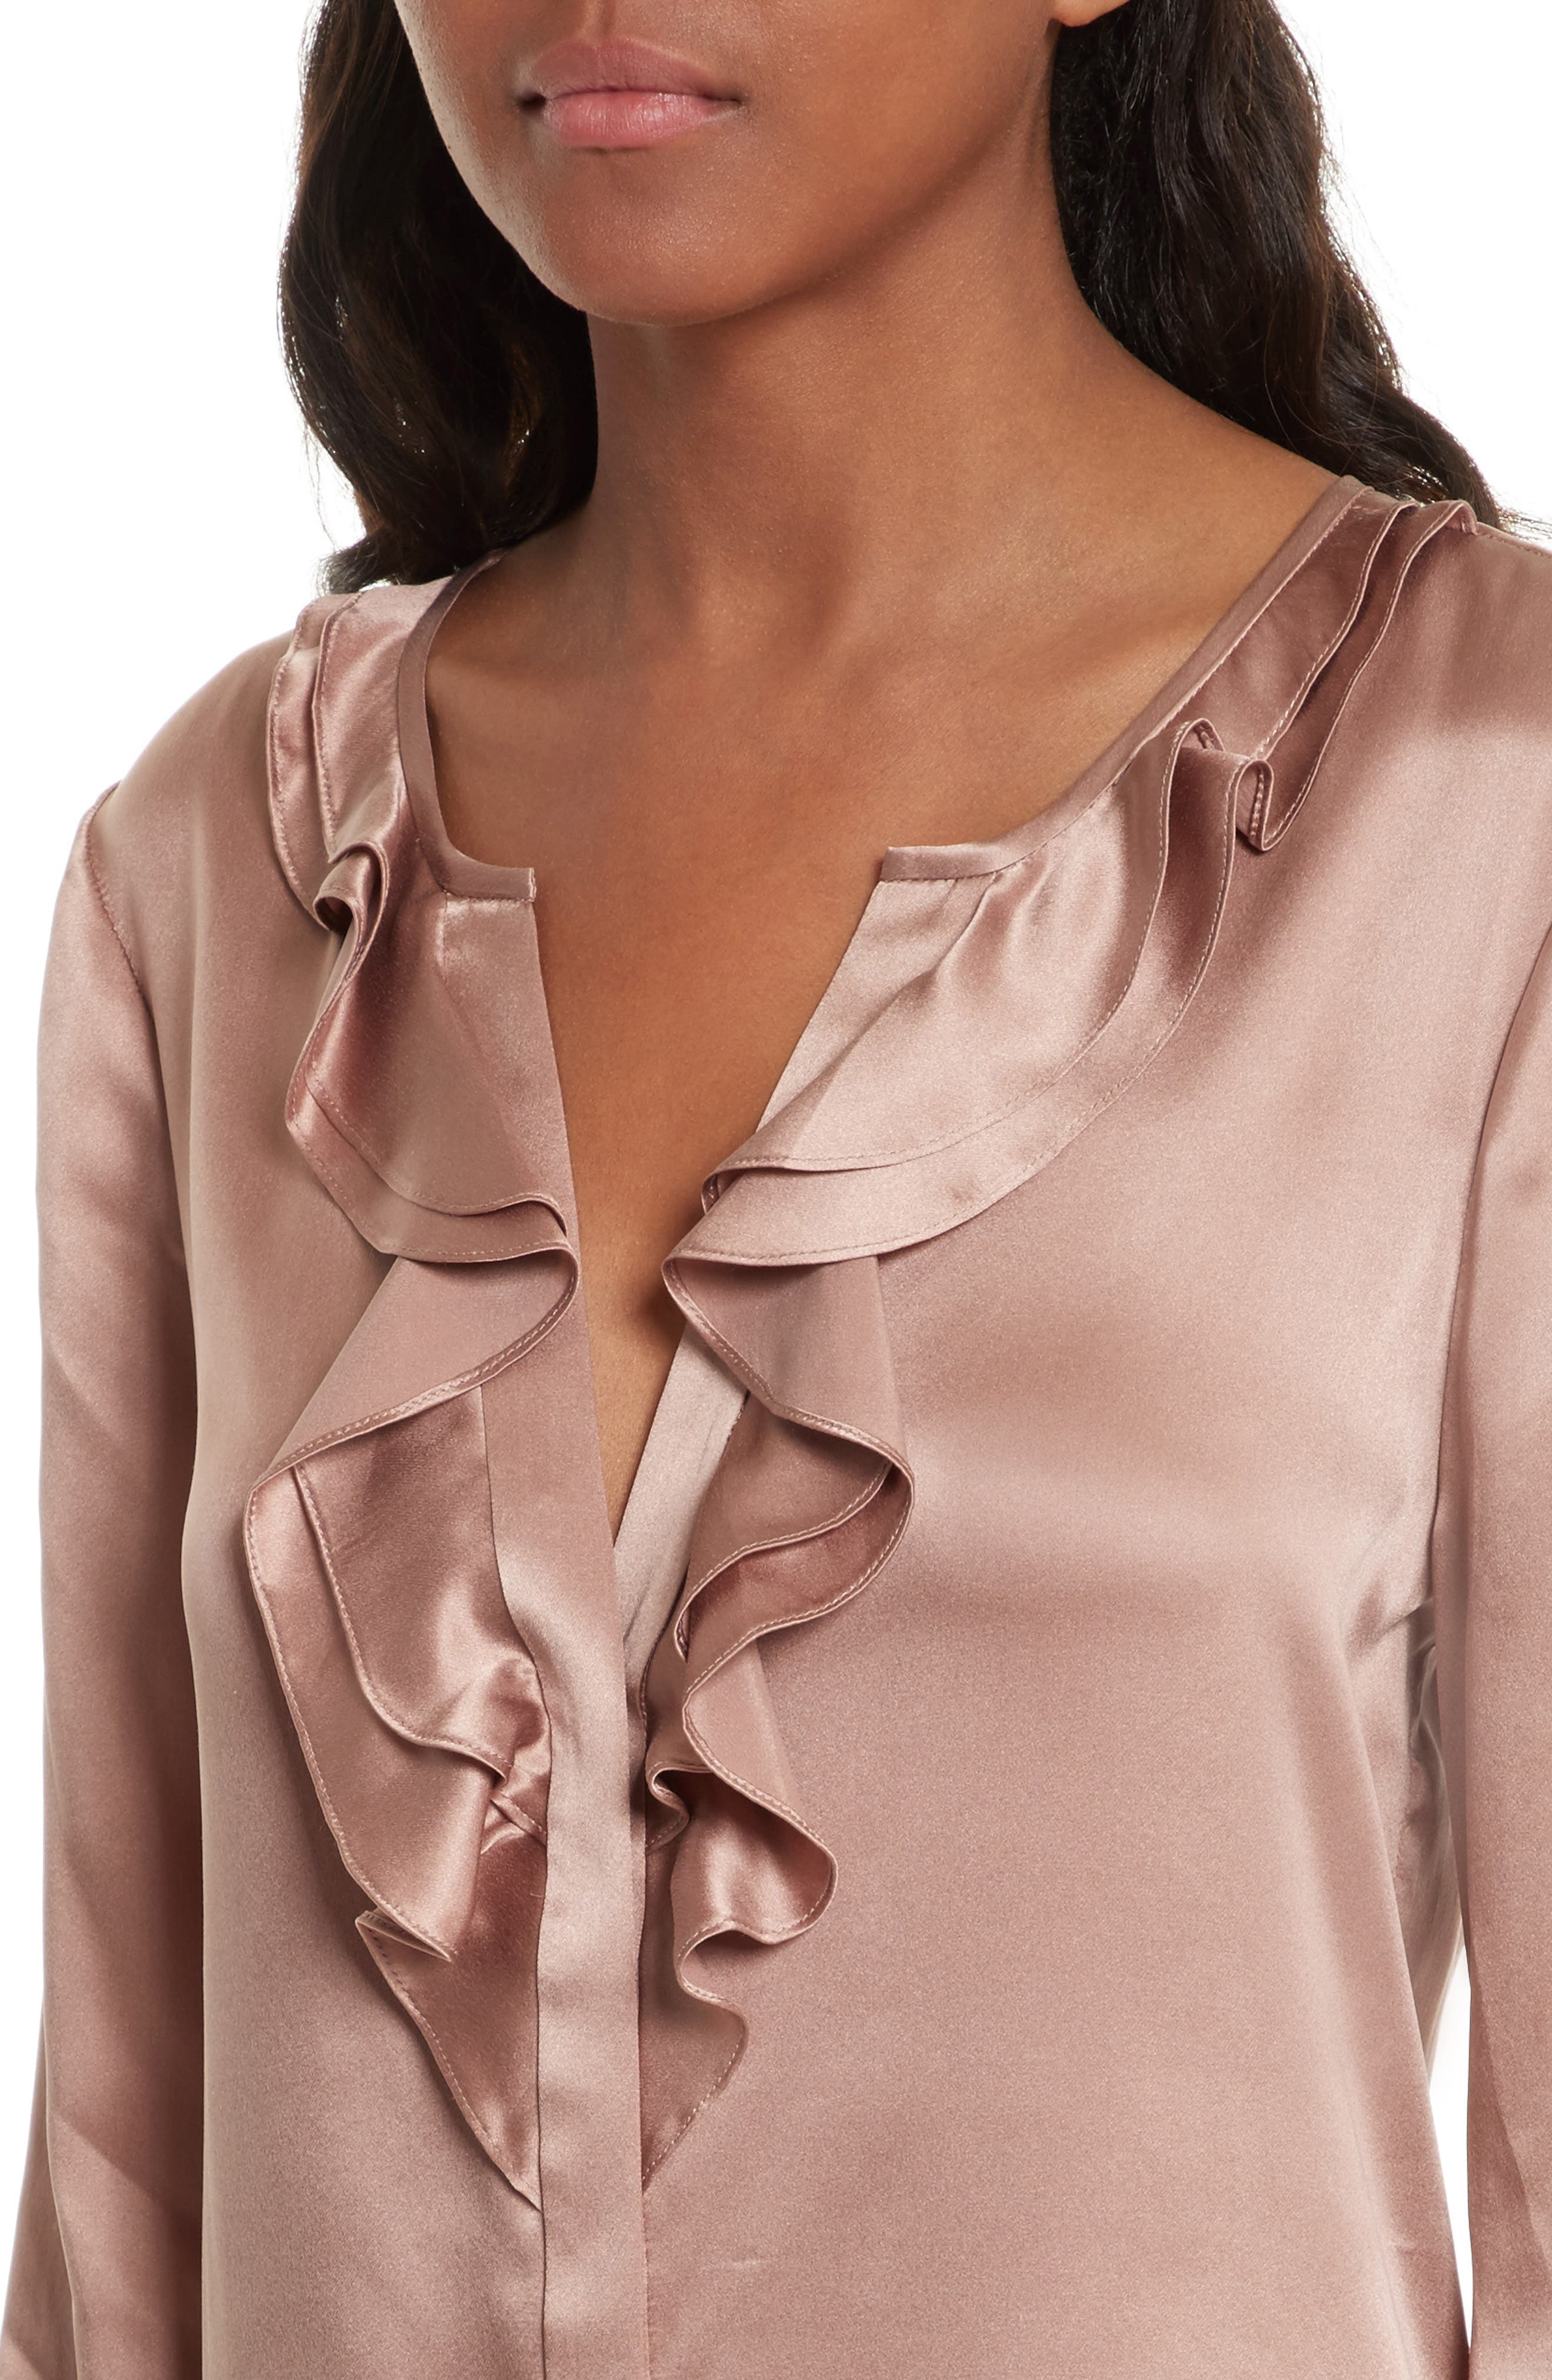 Jayanne B Silk Blouse,                             Alternate thumbnail 4, color,                             Dried Rose